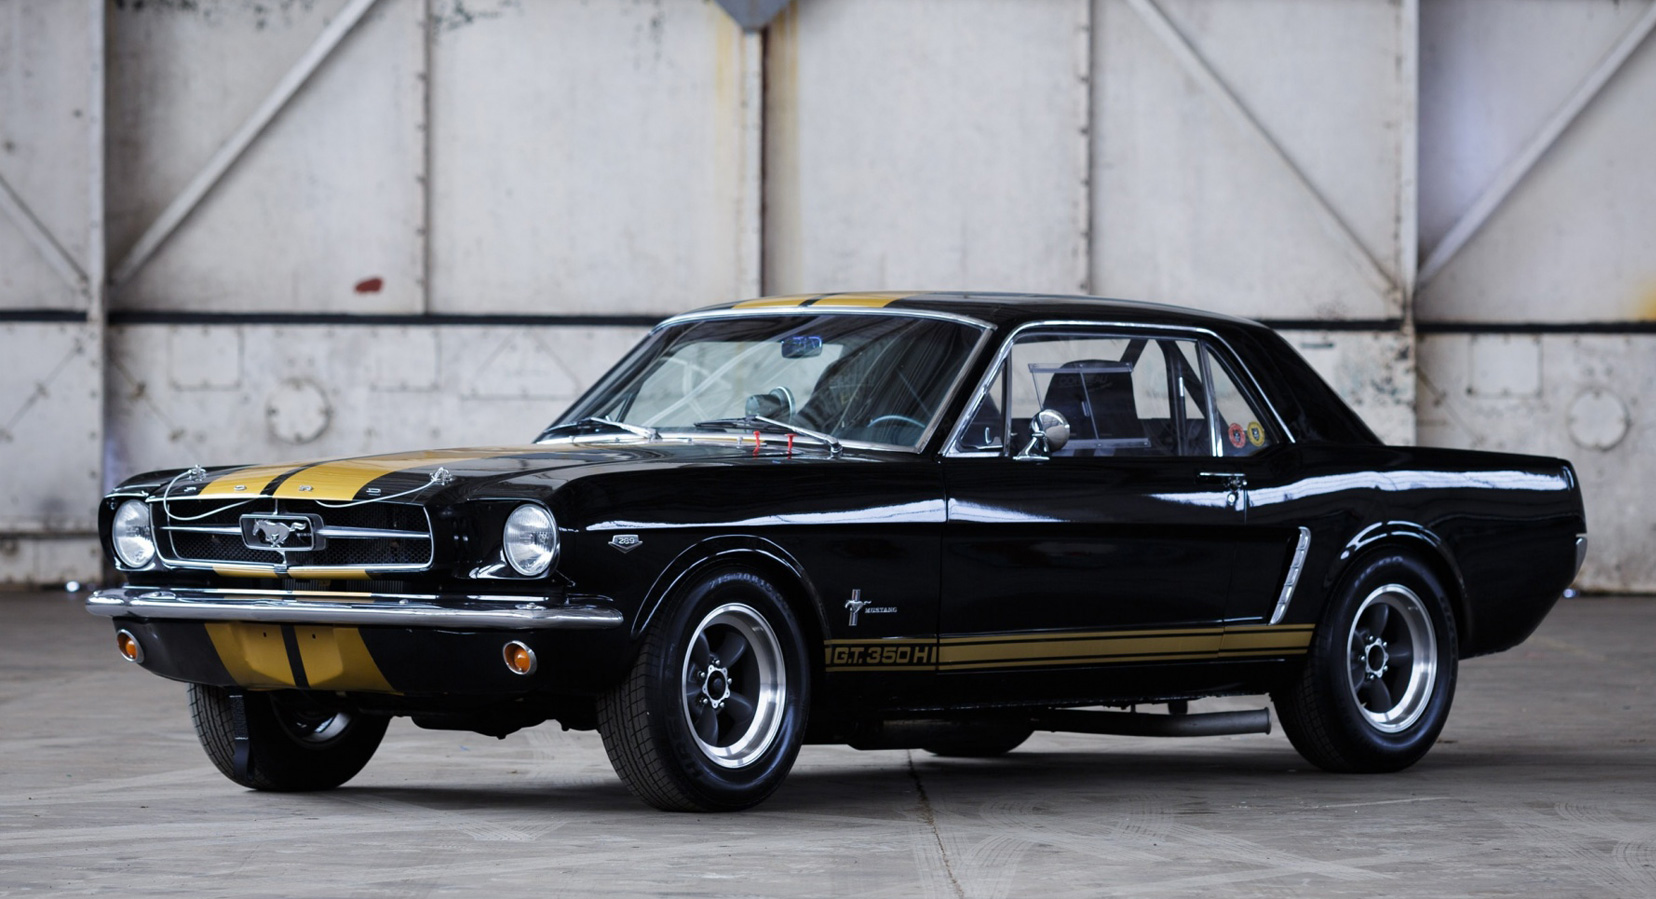 Classic Car Find of the Week: 1965 Ford Mustang HTP Race Car